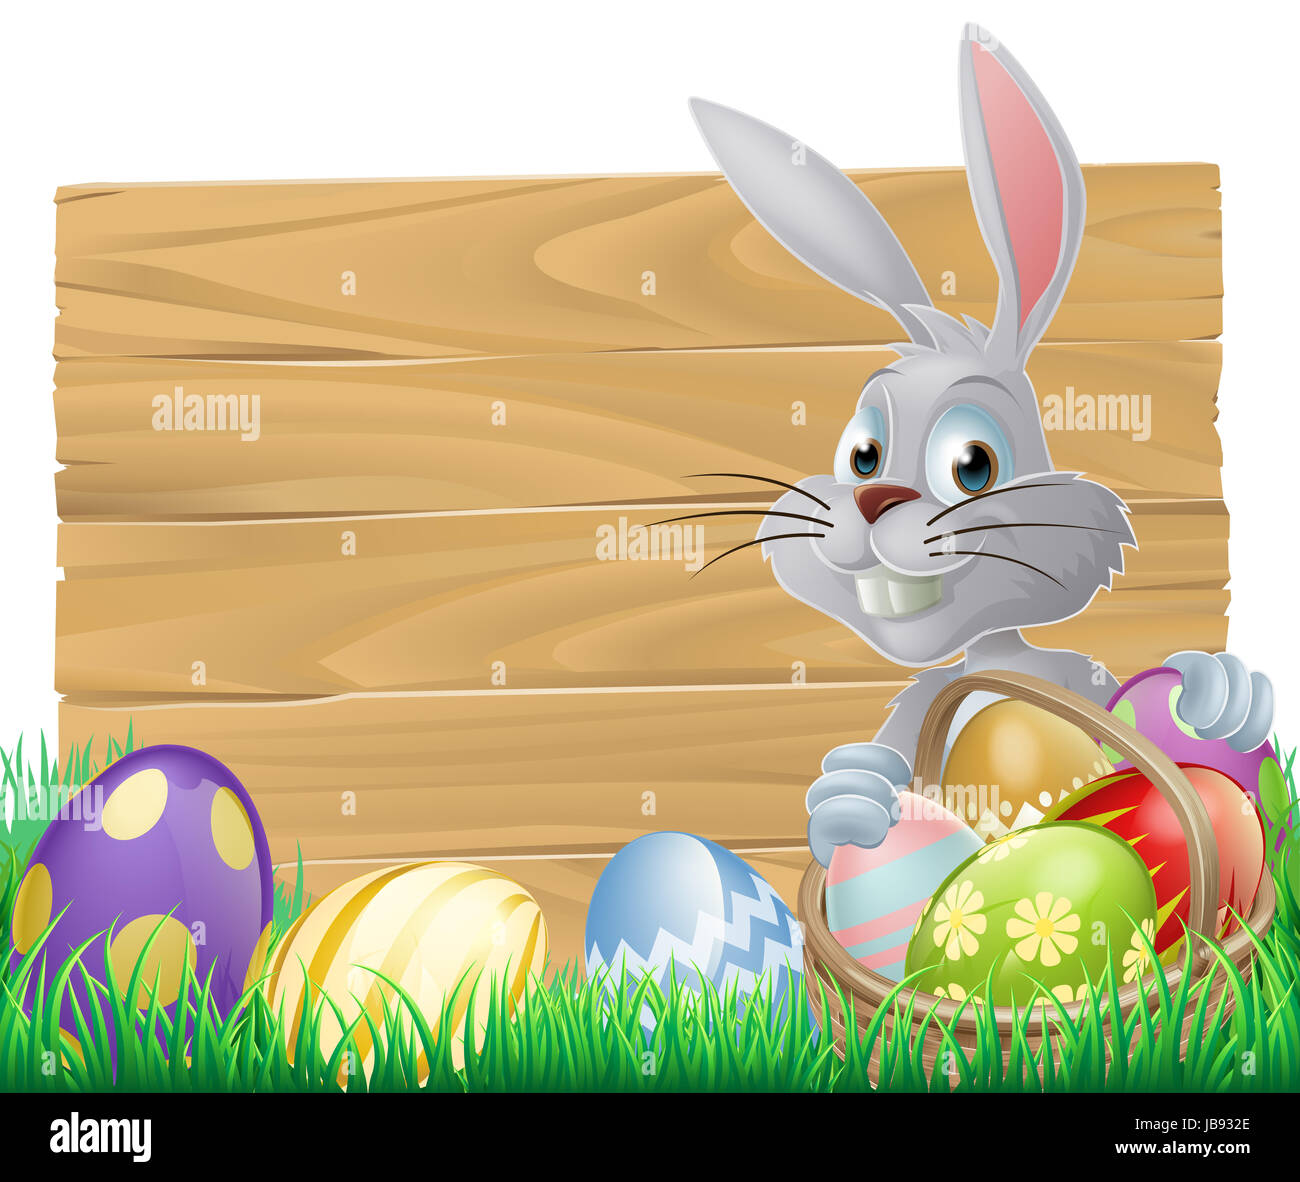 Easter Wood Sign With The Easter Bunny And Painted Easter Eggs Stock Photo Alamy